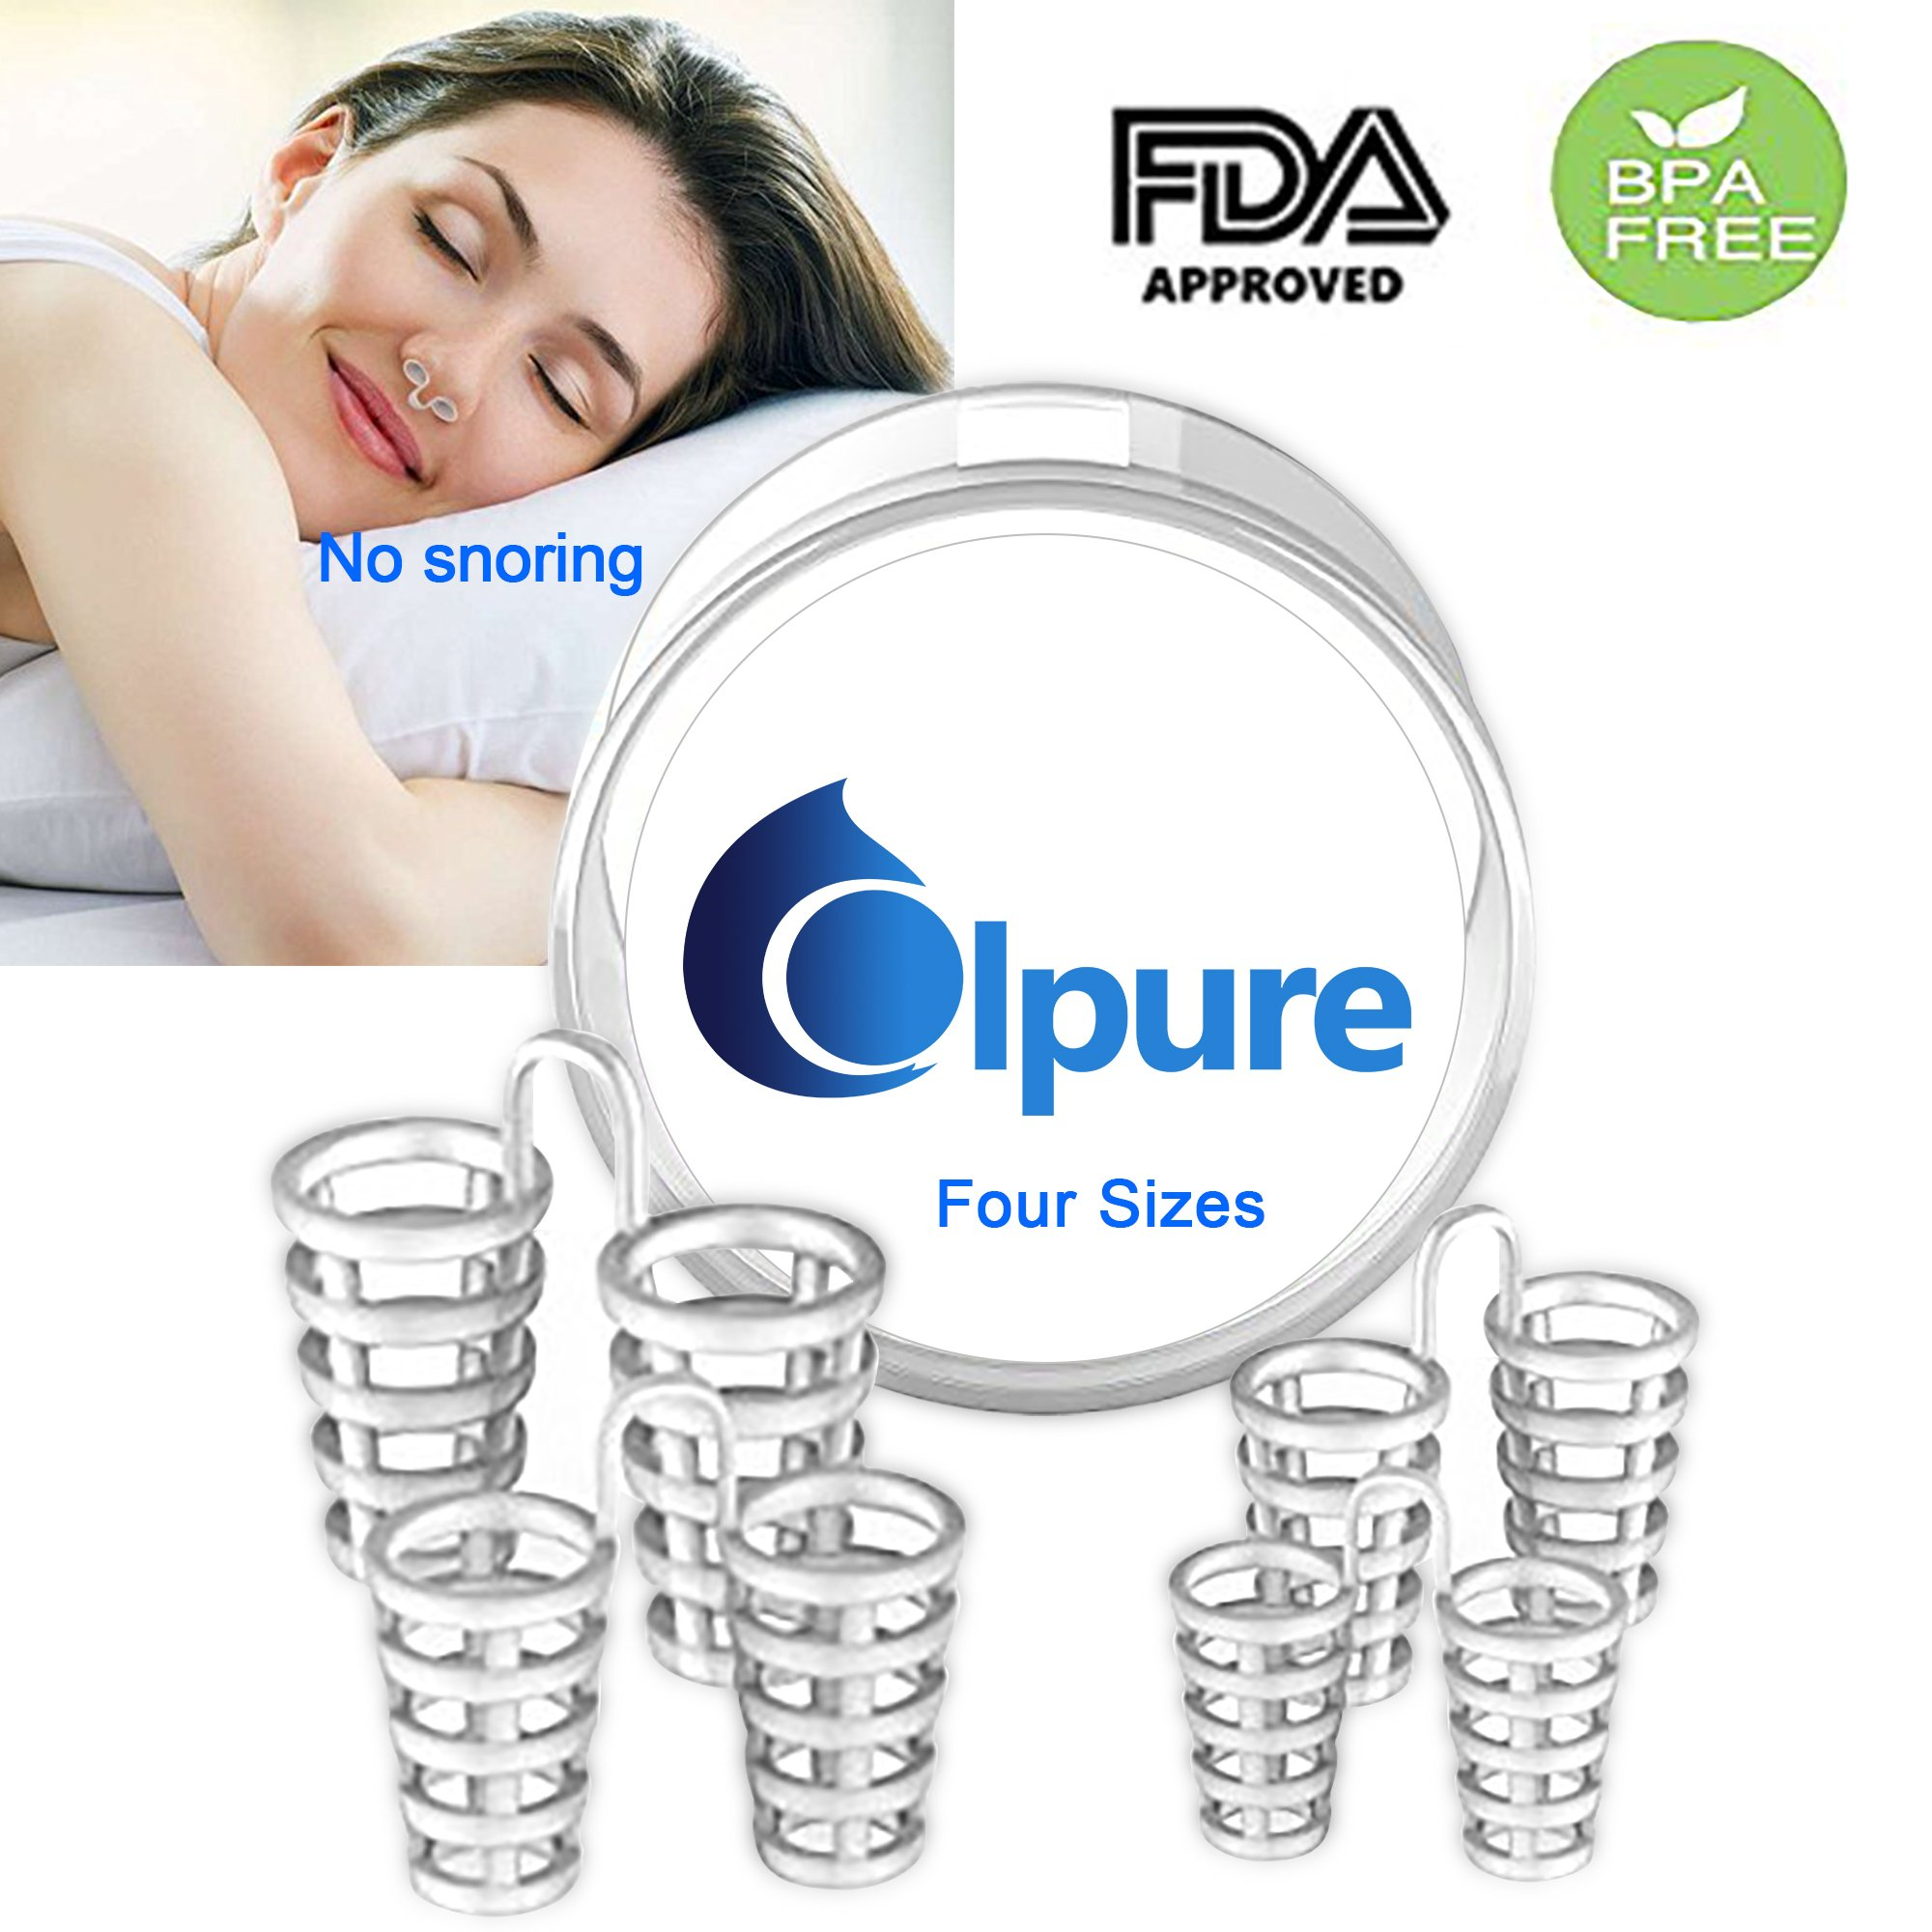 Coipur Anti Snoring Devices-Snoring Solution Nose Vents to Ease Breathing and Snoring-Stop Snoring Nose Vent Device for Natural and Comfortable Sleep, Instant, Fast and Safe Snore Relief-4 Sizes